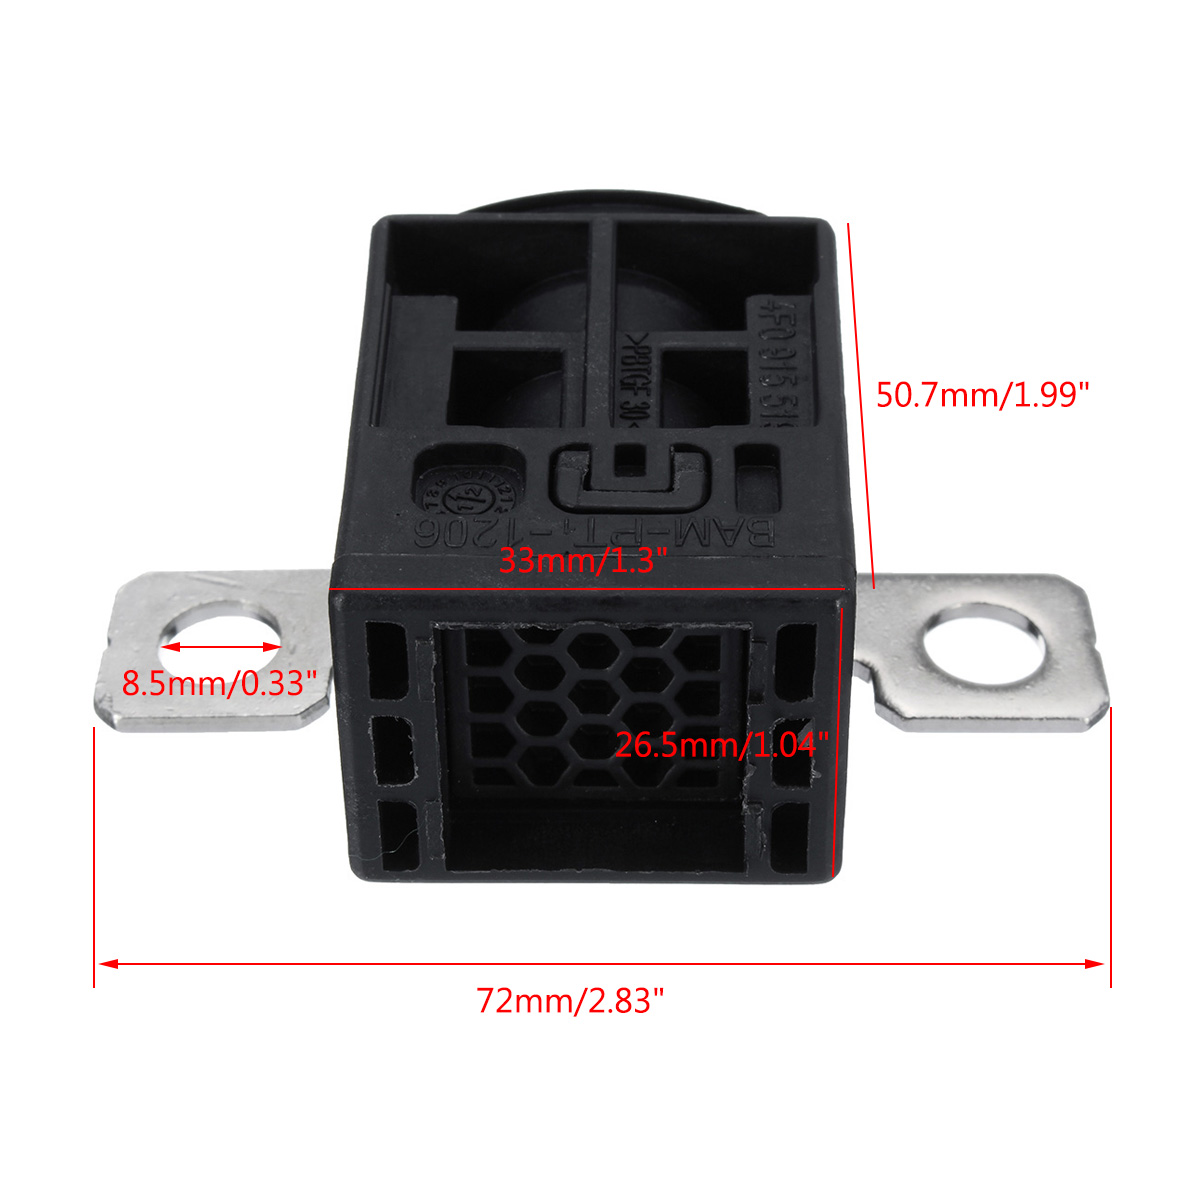 small resolution of 4f0915519 battery fuse box cut off overload protection trip for audi q5 a5 a7 a6